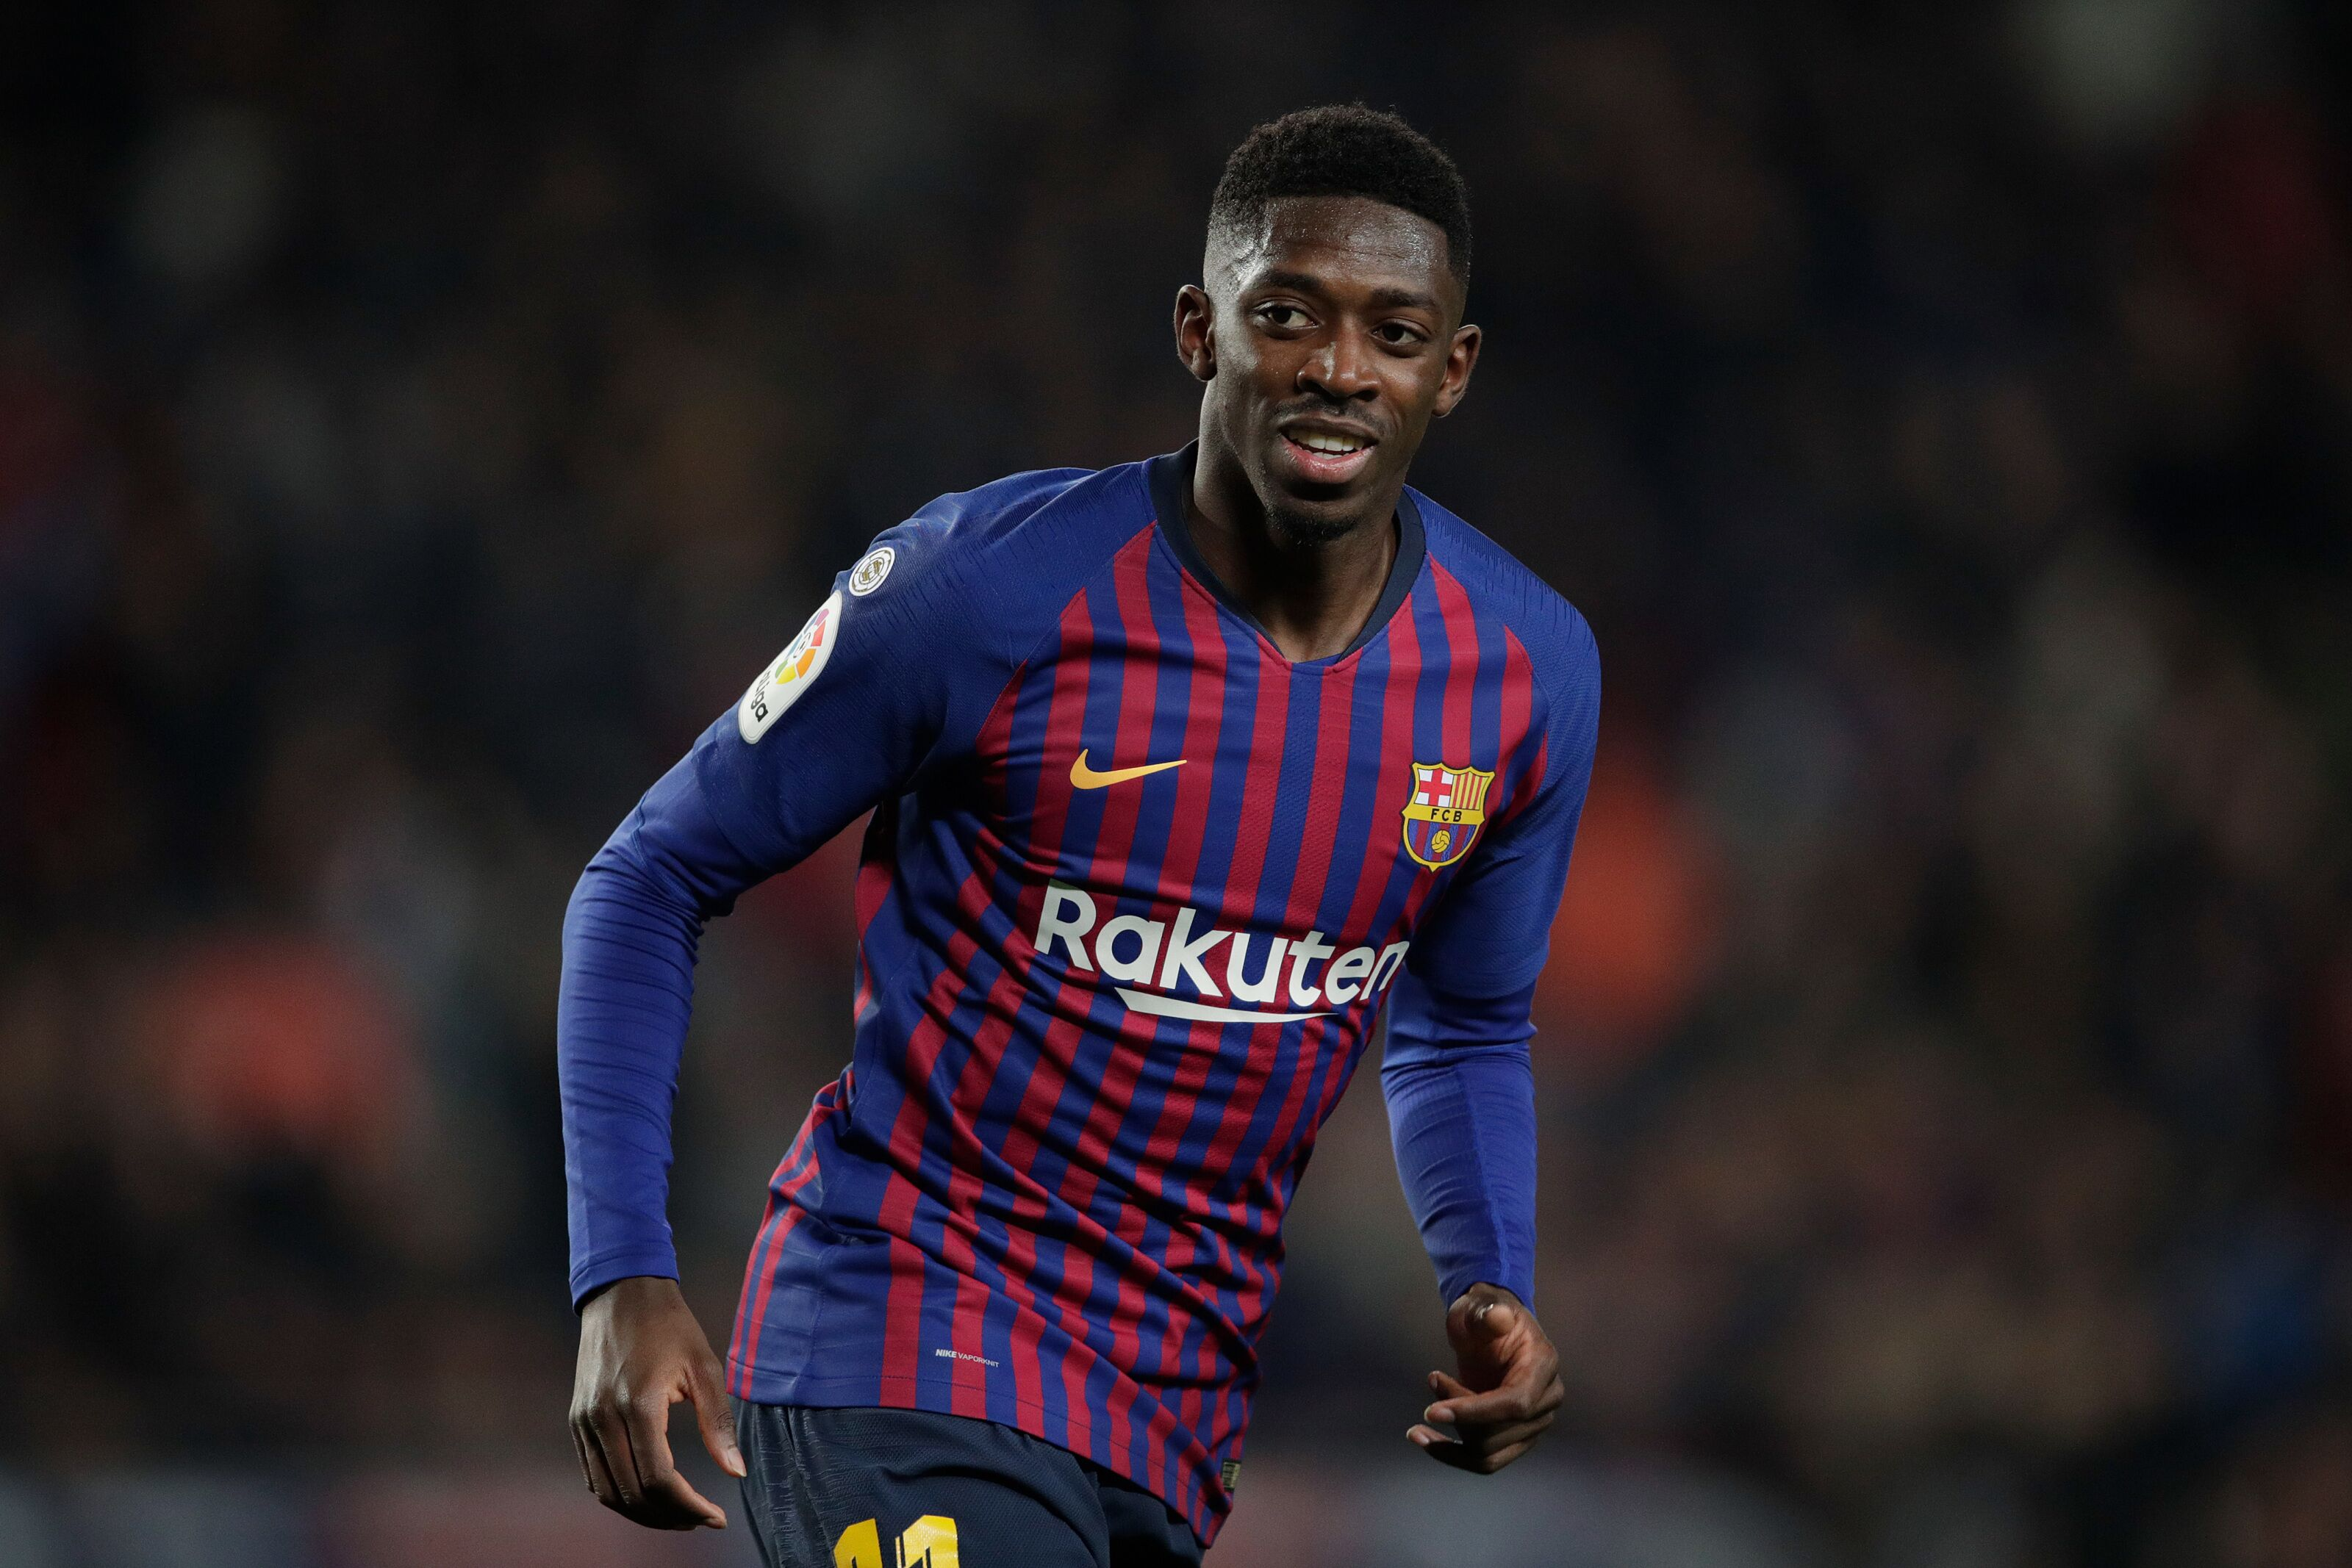 63eacd2236f Barcelona relieved as Ousmane Dembélé overcomes injury in time